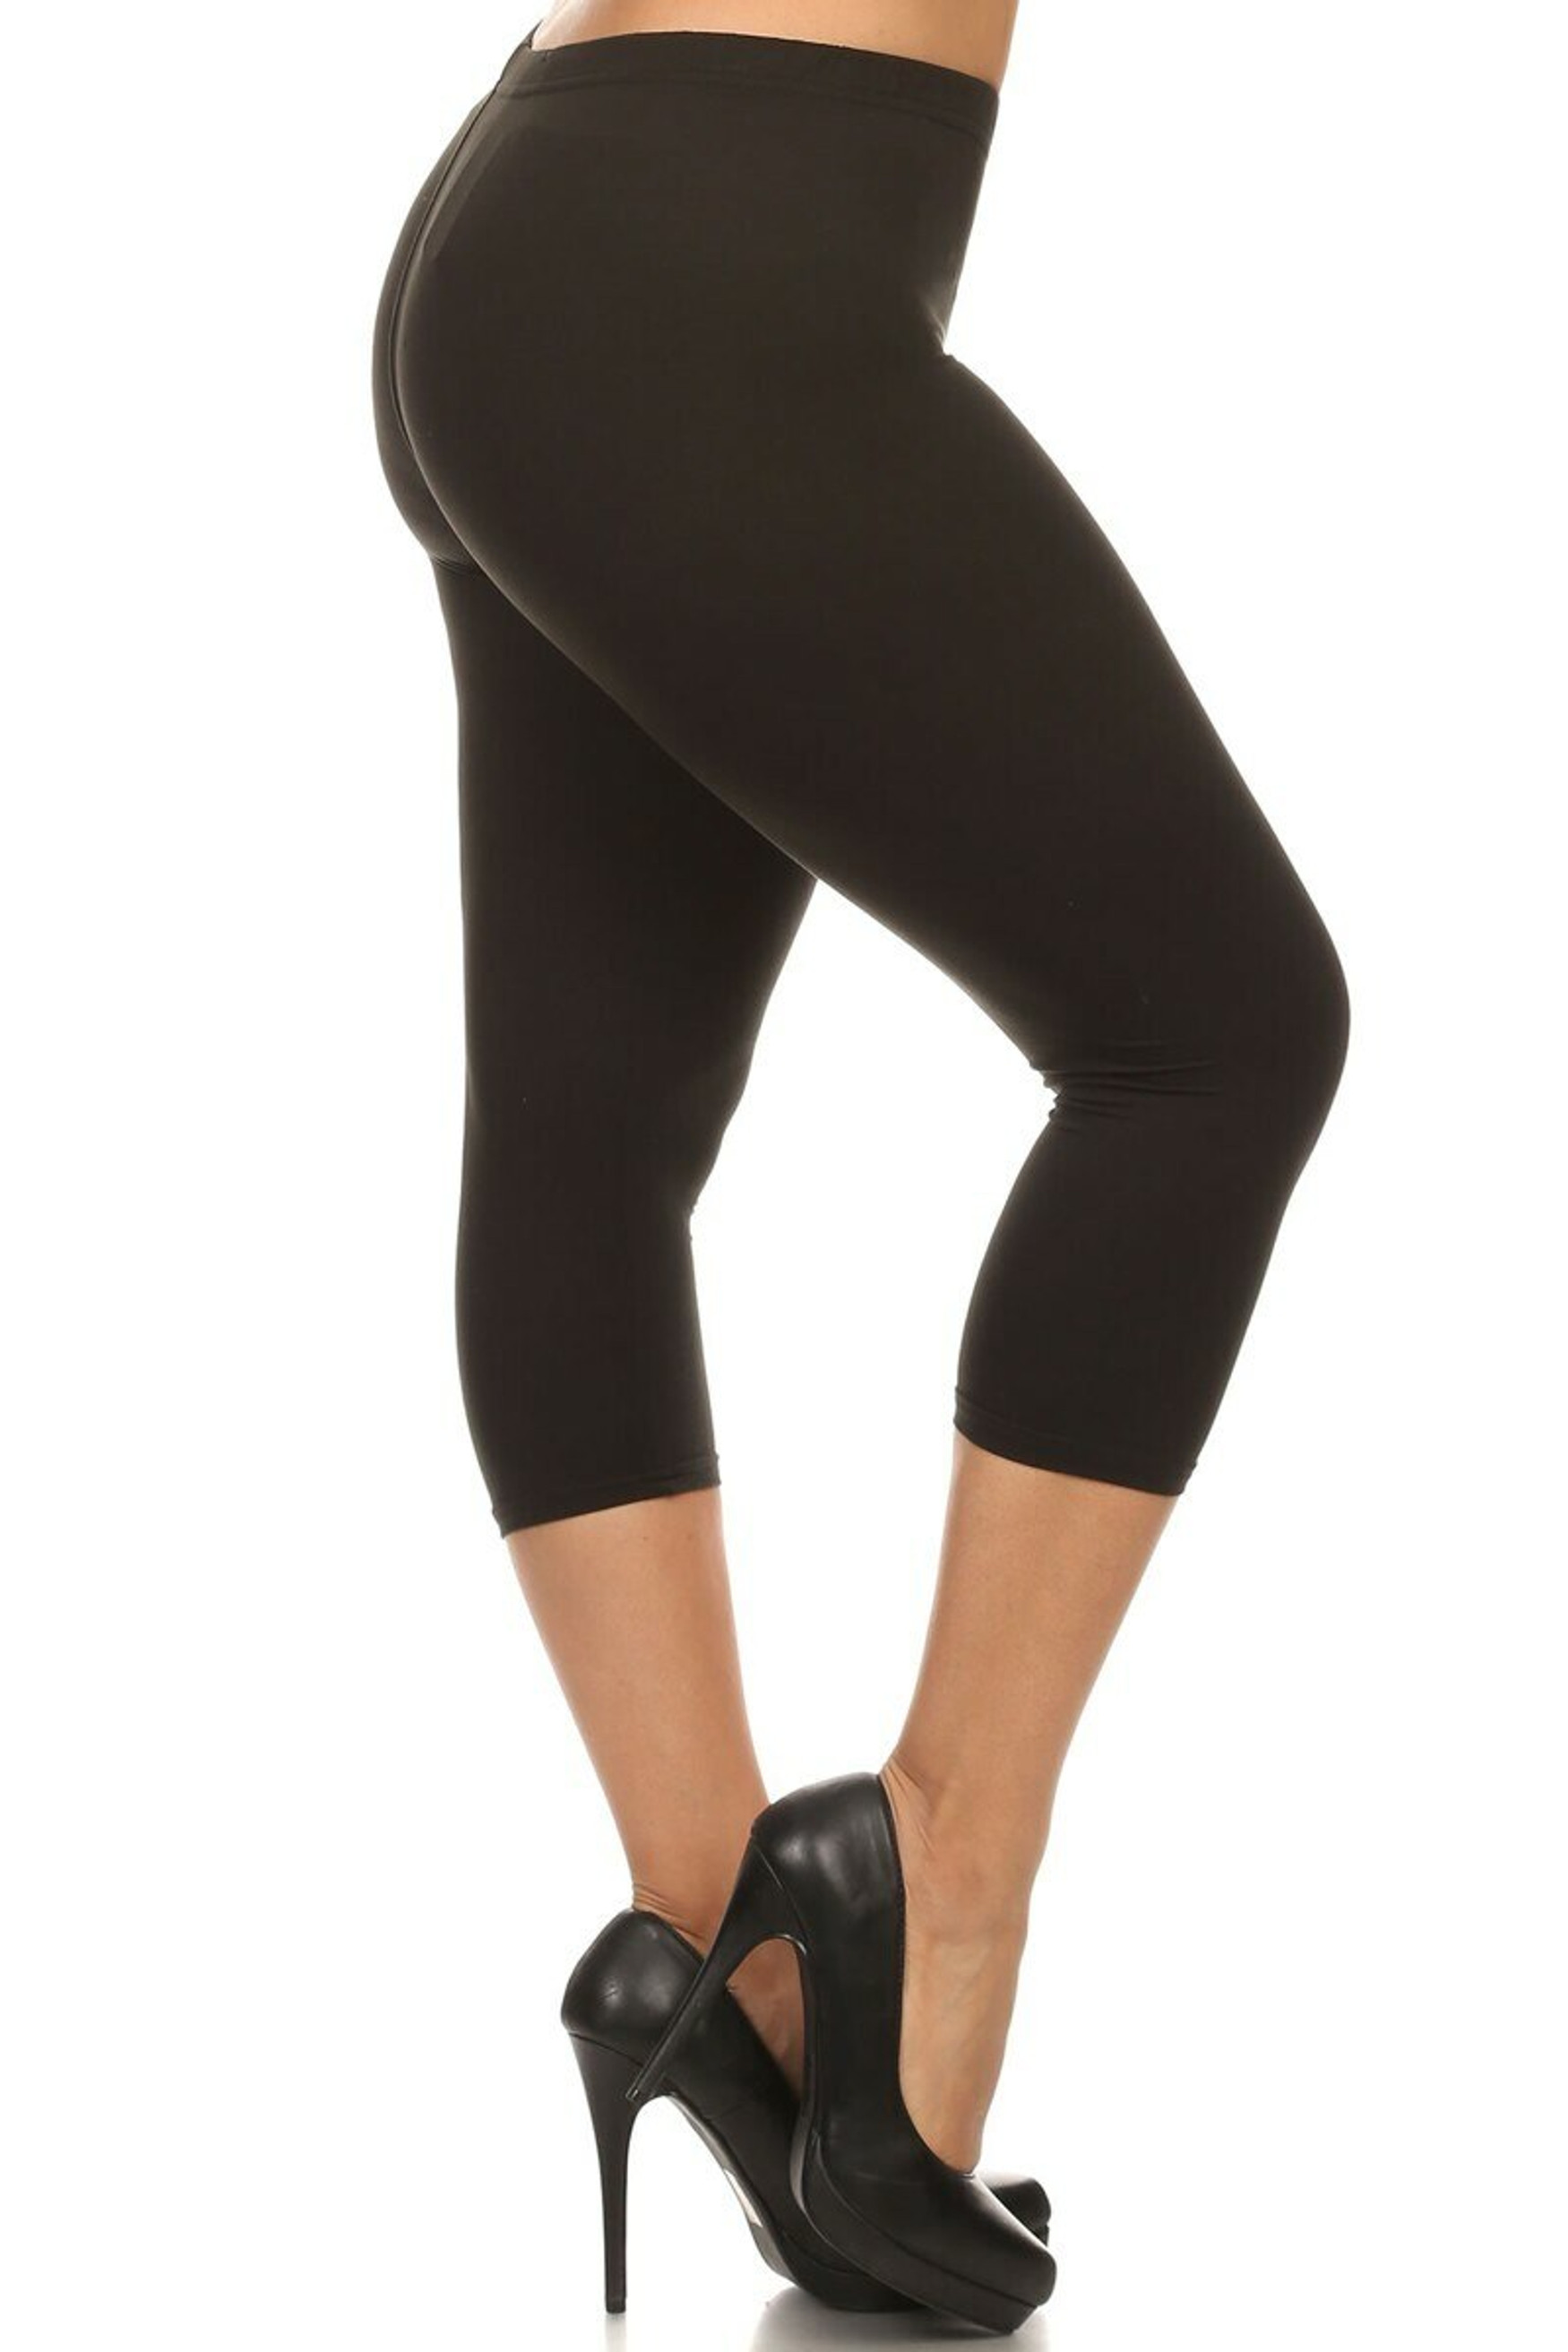 Right side of Black Buttery Soft Solid Basic Extra Plus Size Capris - 3X-5X - New Mix